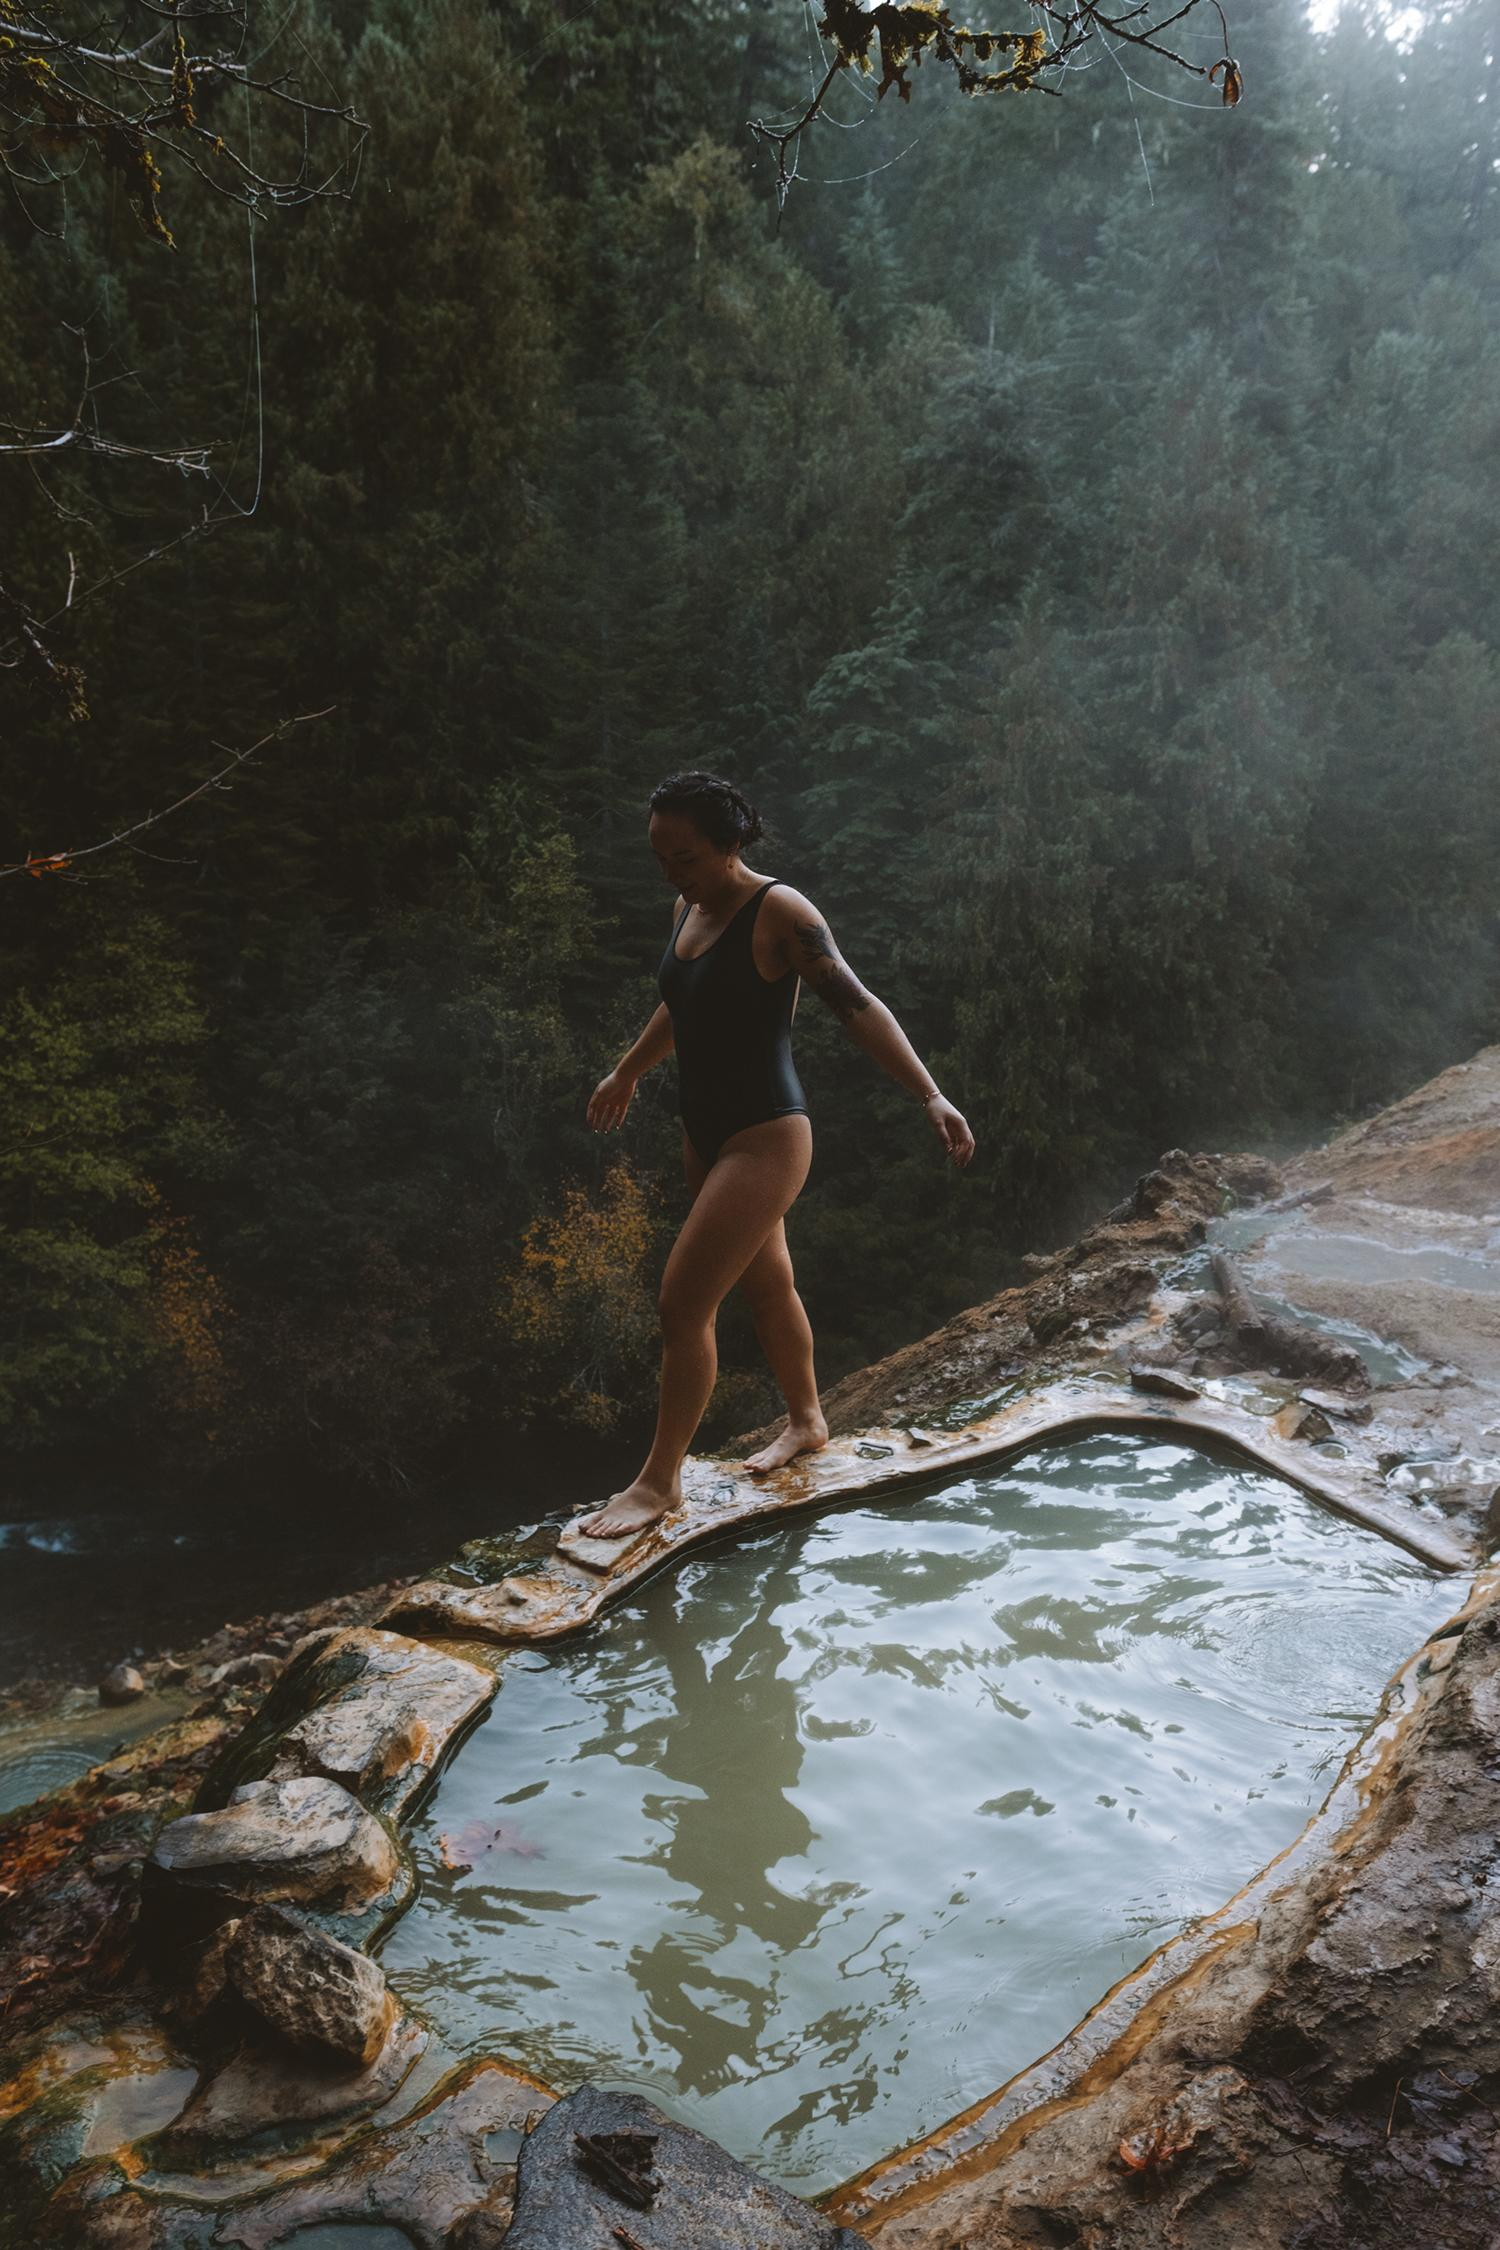 <p>Located in the central Oregon Cascades, Umpqua Hot Springs is accessible year-round and features a multitude of hot pools (and one covered) located on a mineral deposit above the North Umpqua River. Only a 1/4 mile hike from the parking area, and on a first come first serve basis, this hot spring is sure to please visitors. Beat the crowds by coming early in the morning for sunrise, and make sure to pack out any waste! While you're at it, you might as well make a stop at Toketee Falls as well! Located roughly 10 minutes from the springs, this incredibly short hike requires very little effort for a huge reward of a gorgeous cascading waterfall. (Image: Ryan McBoyle / Seattle Refined)</p>